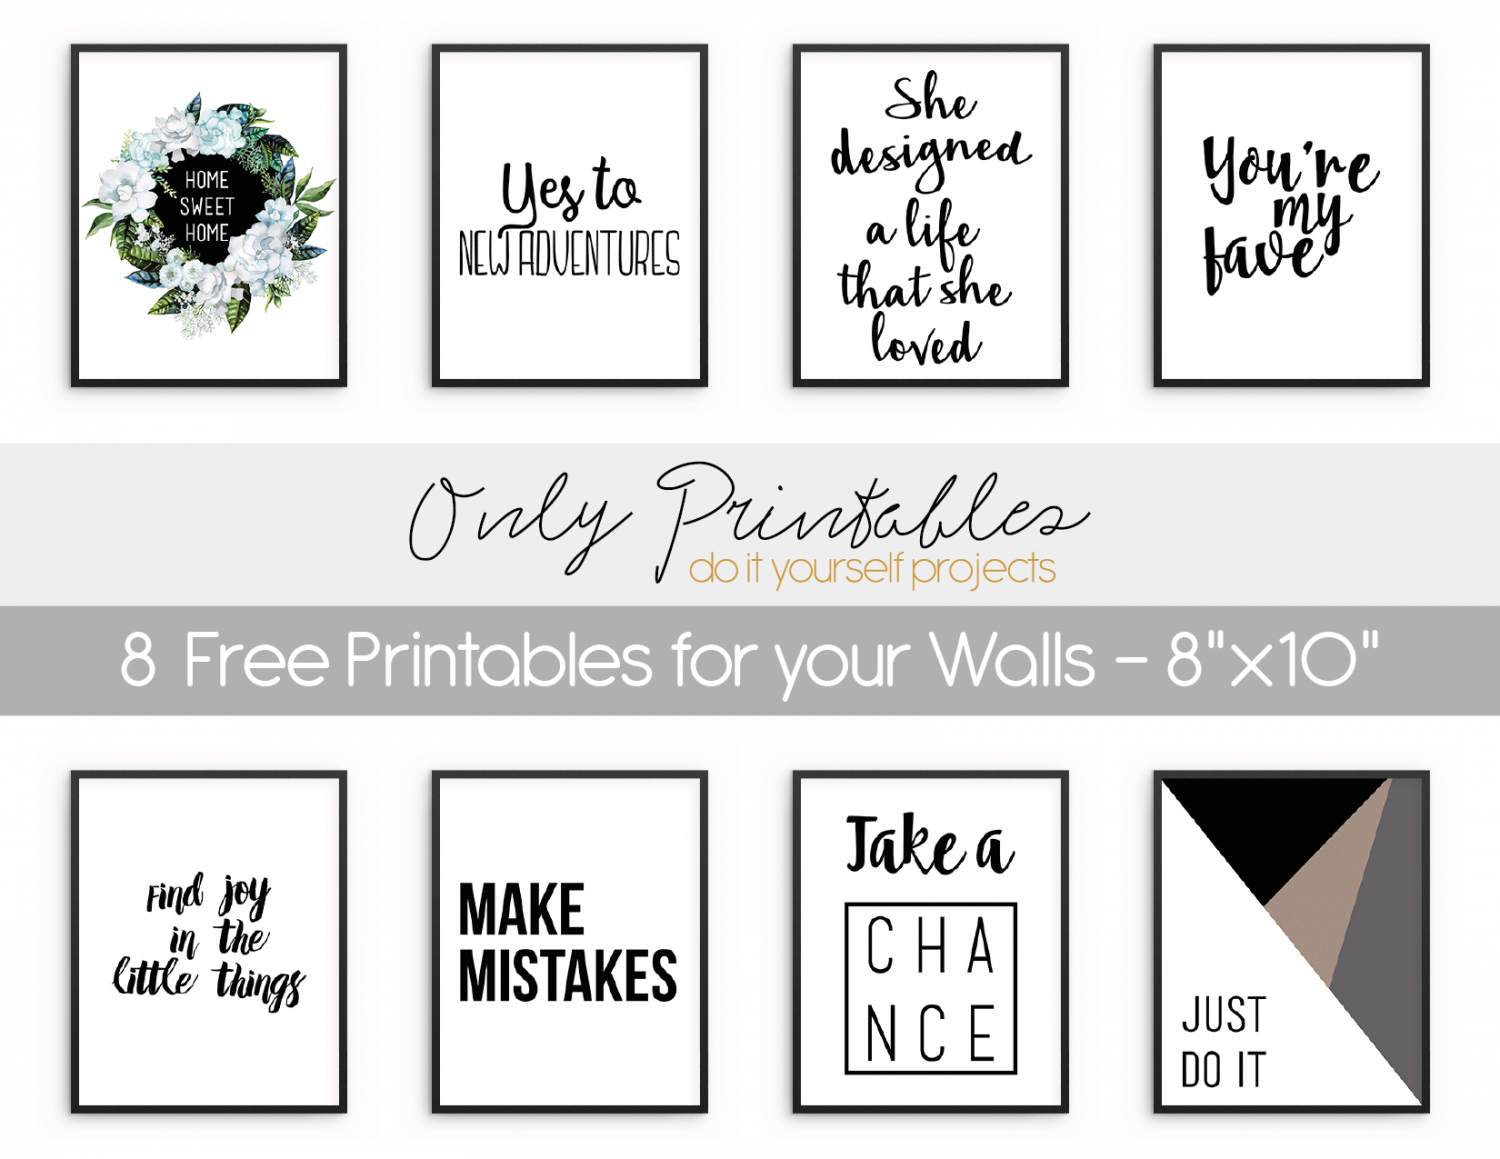 Only Printables | 8 Free Printables For Your Walls - Free Printable Art Pictures